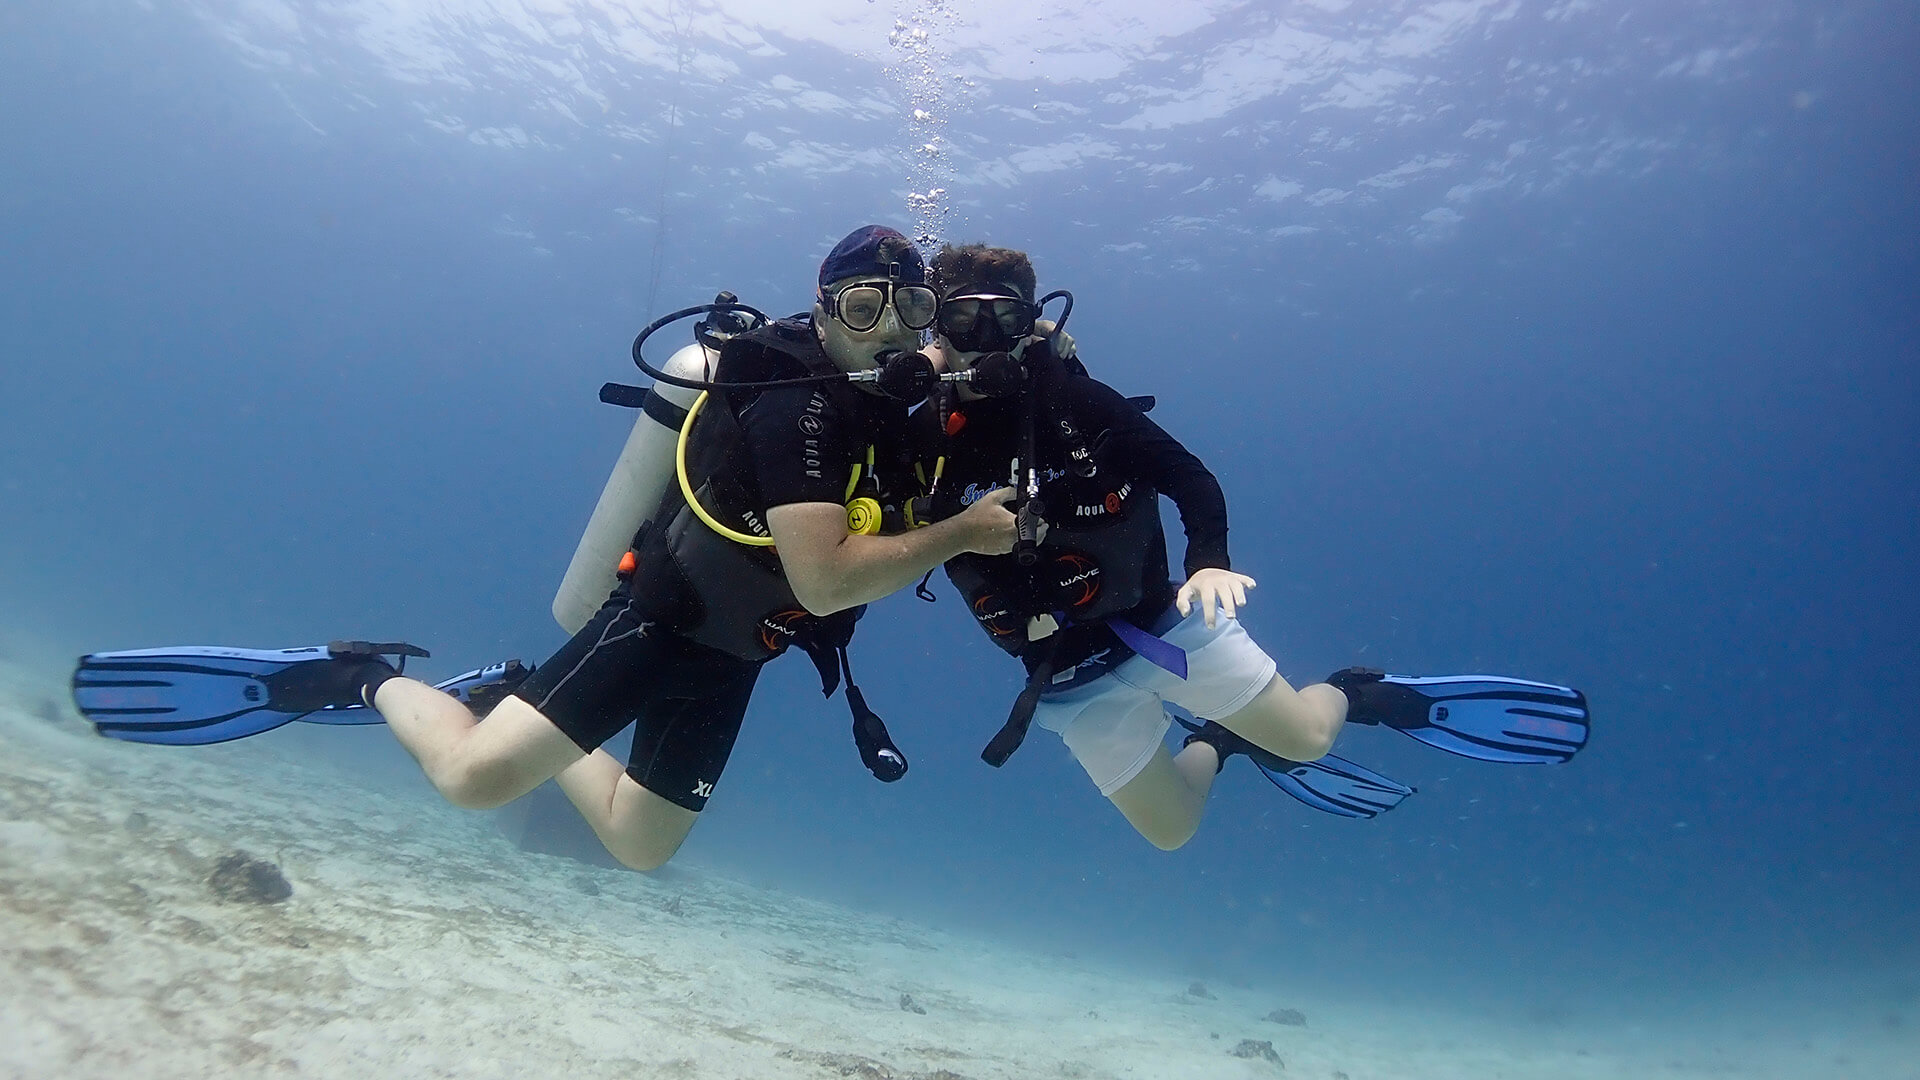 Scuba Diving – Getting Family And Friends Involved